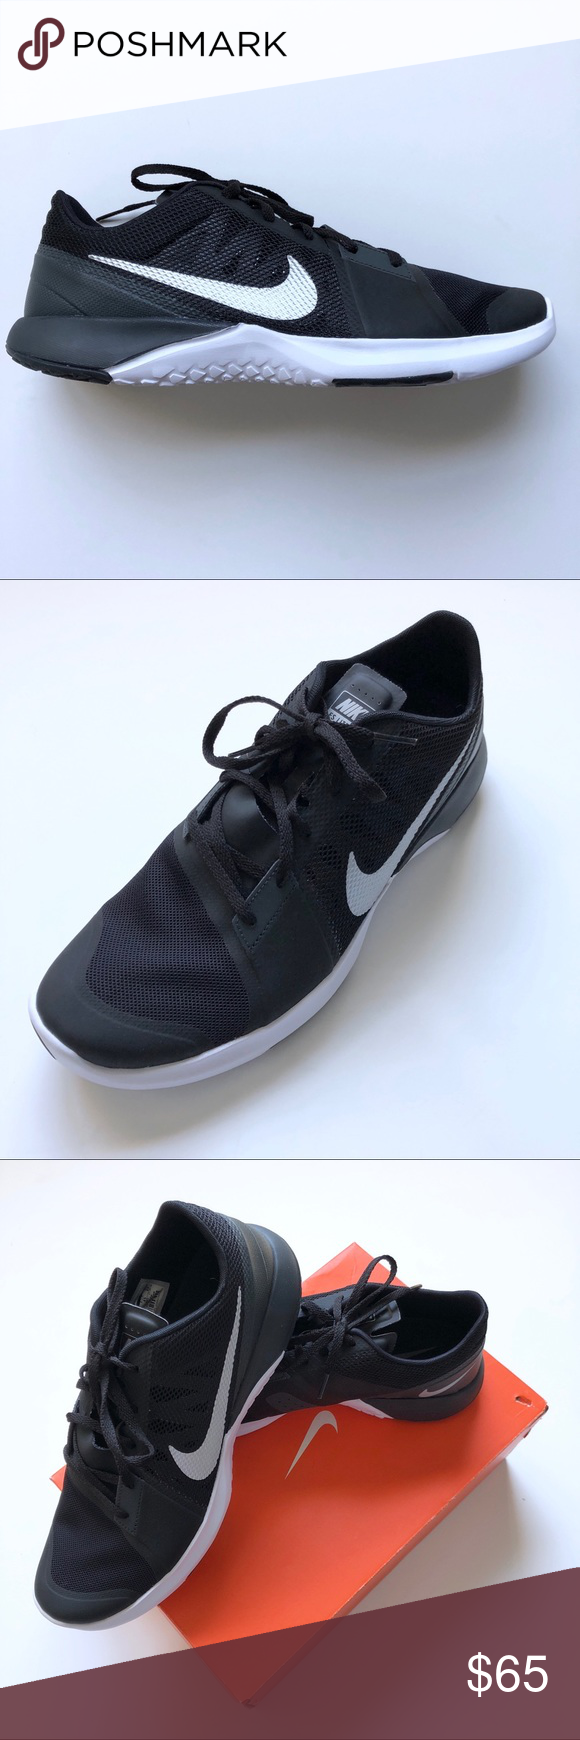 7e70abae1b0b Nike FS Lite Training Sneakers Nike Black and White FS Lite Training  Sneakers NWT